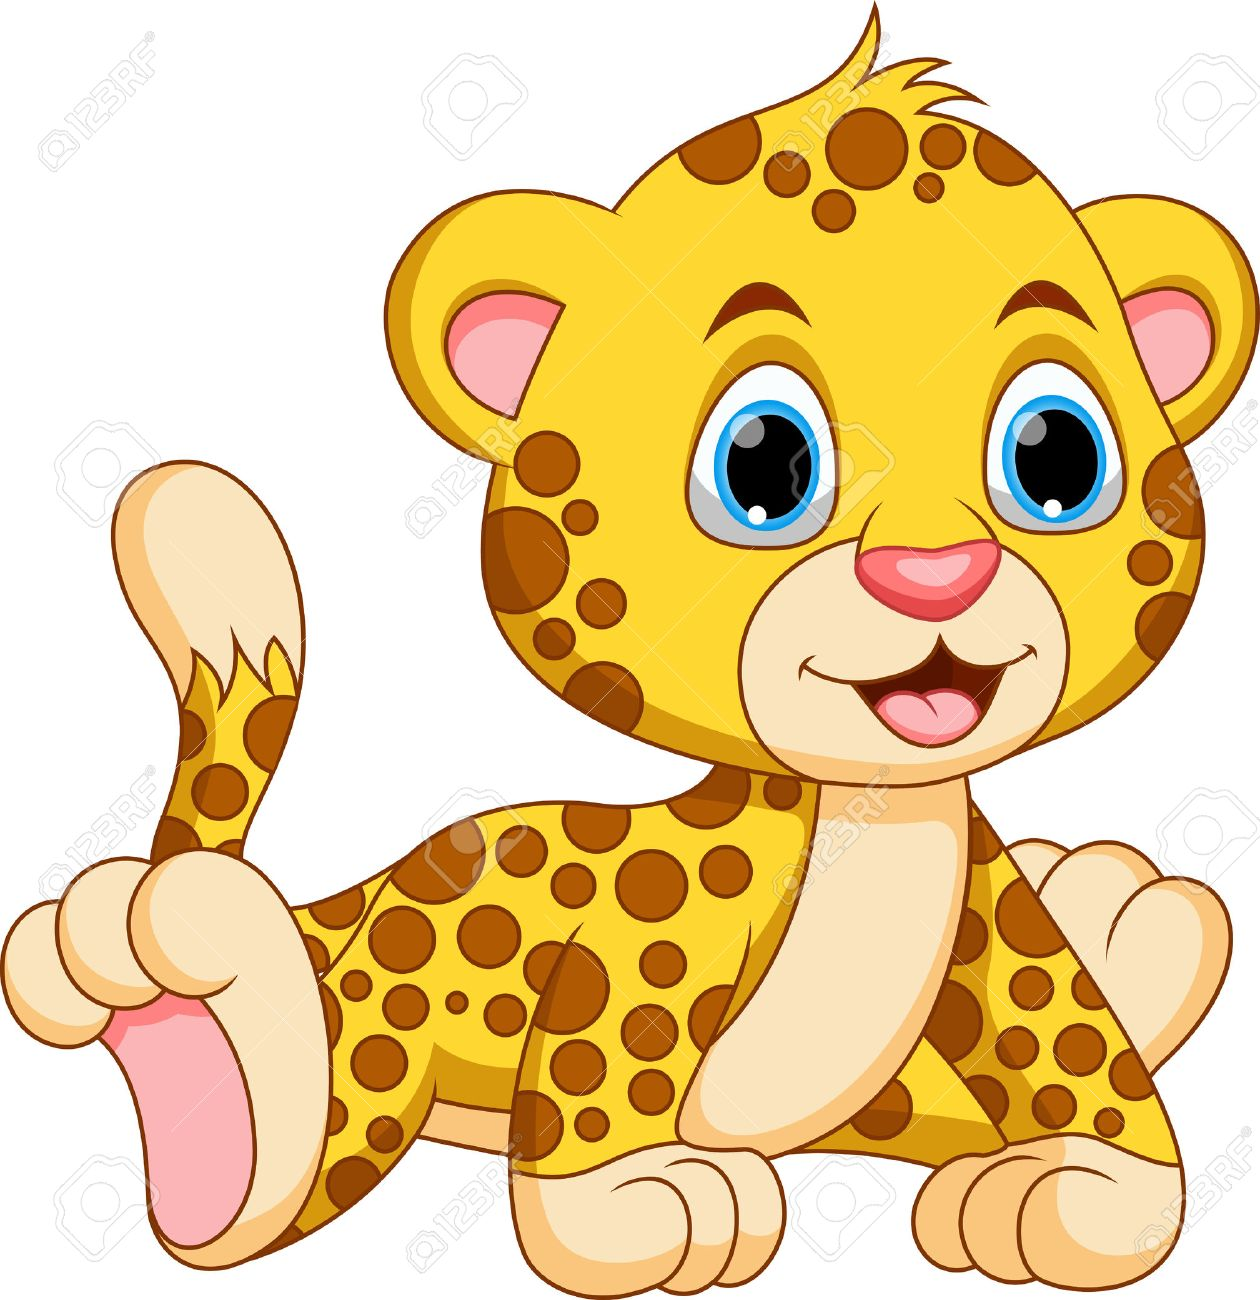 cheetah hunt stock photos royalty free cheetah hunt images rh 123rf com Clip Art Cheetah Cub Cute Cartoon Cheetahs